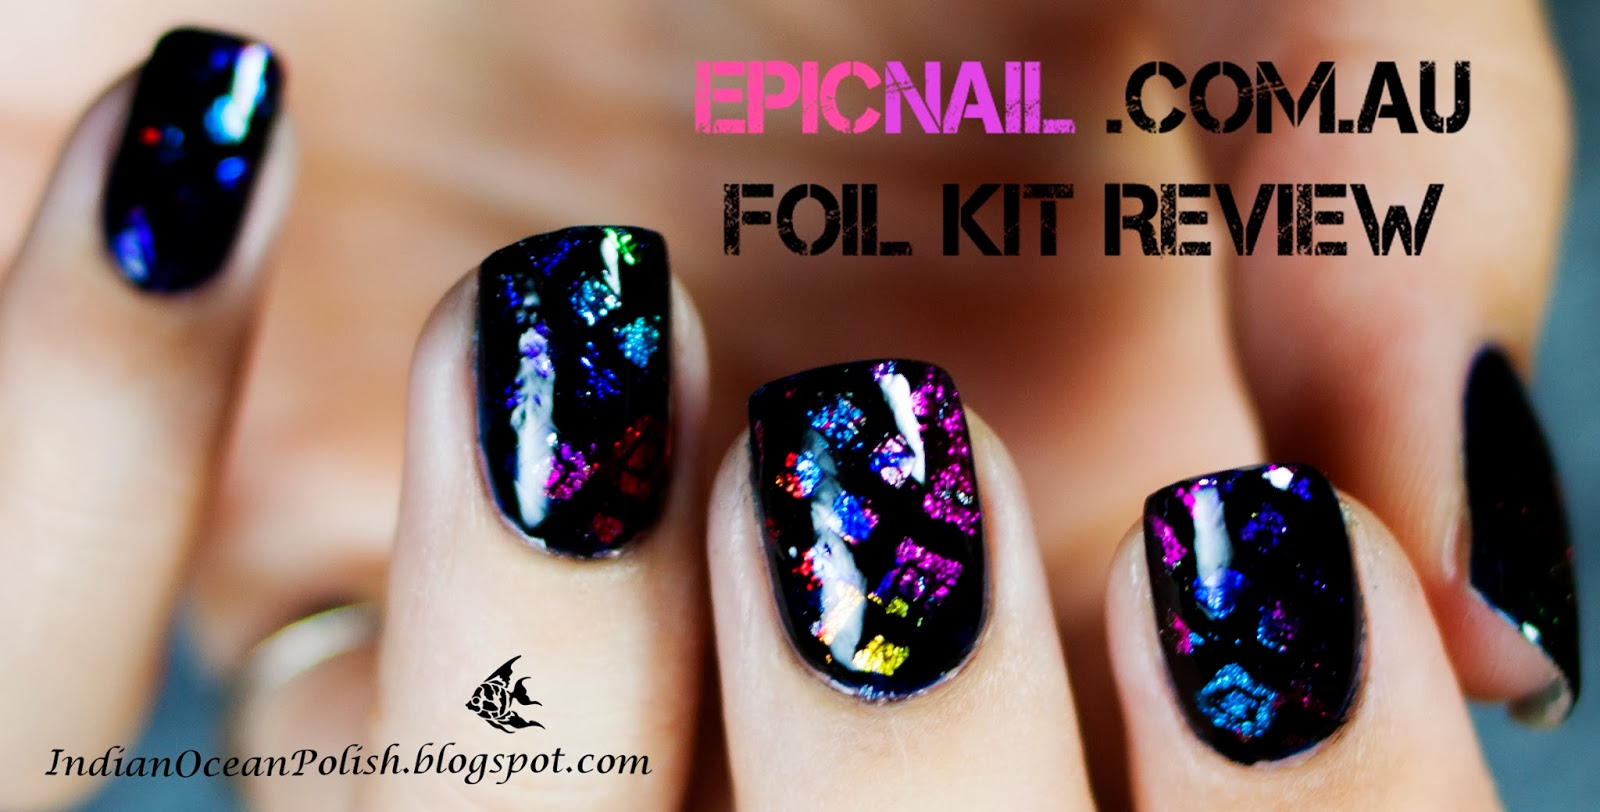 Indian Ocean Polish: Review: Epicnail New Nail Foil Kits! \